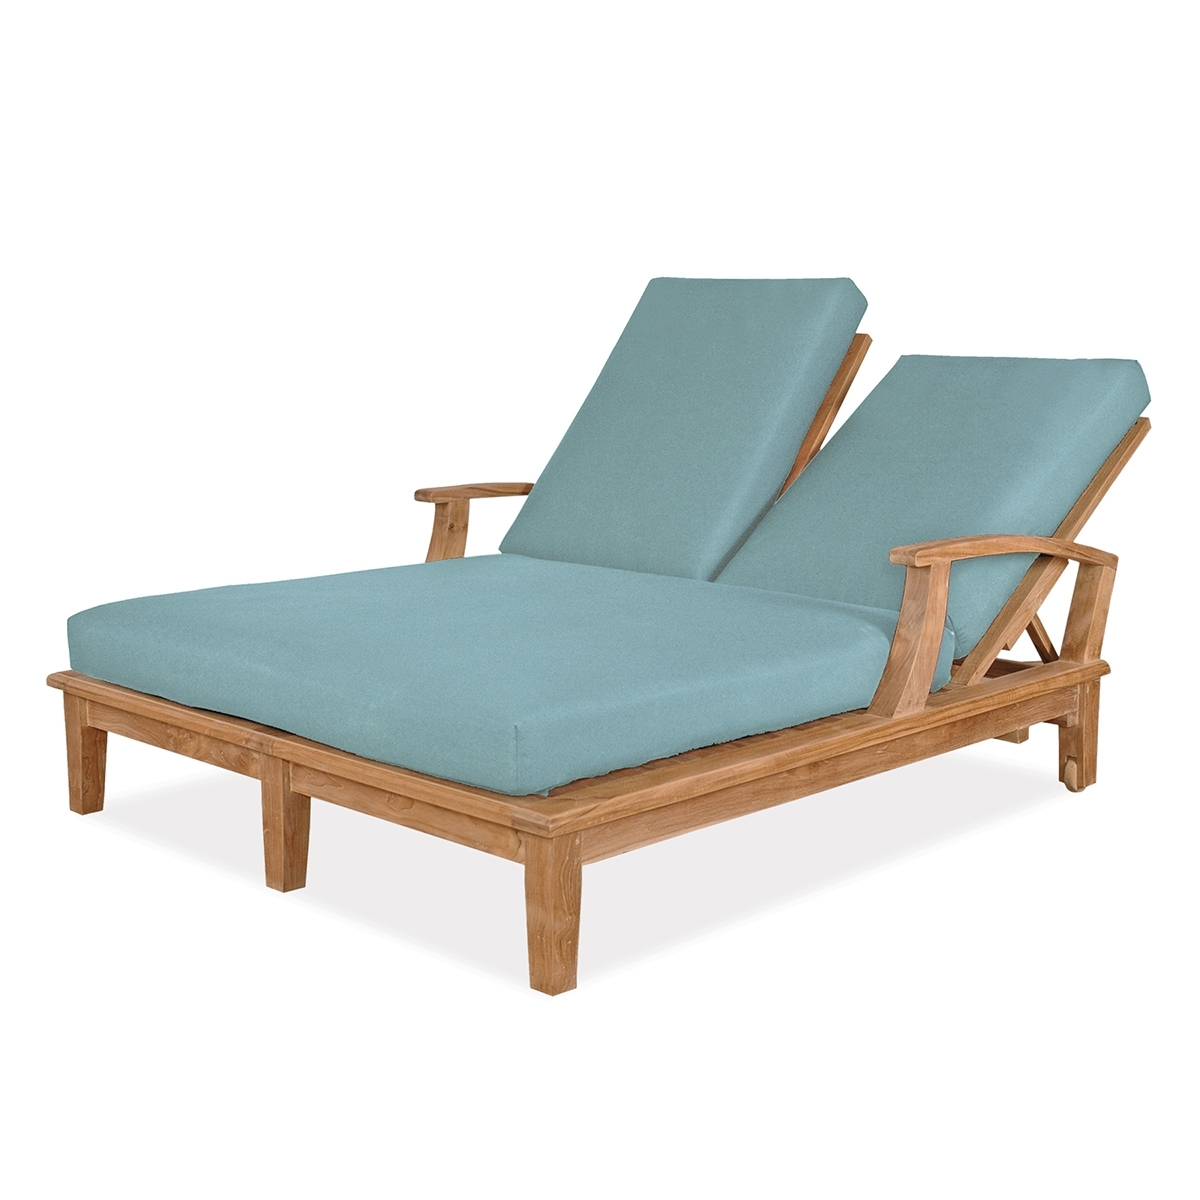 Veranda Collection Throughout Double Chaise Lounge Outdoor Chairs (View 5 of 15)